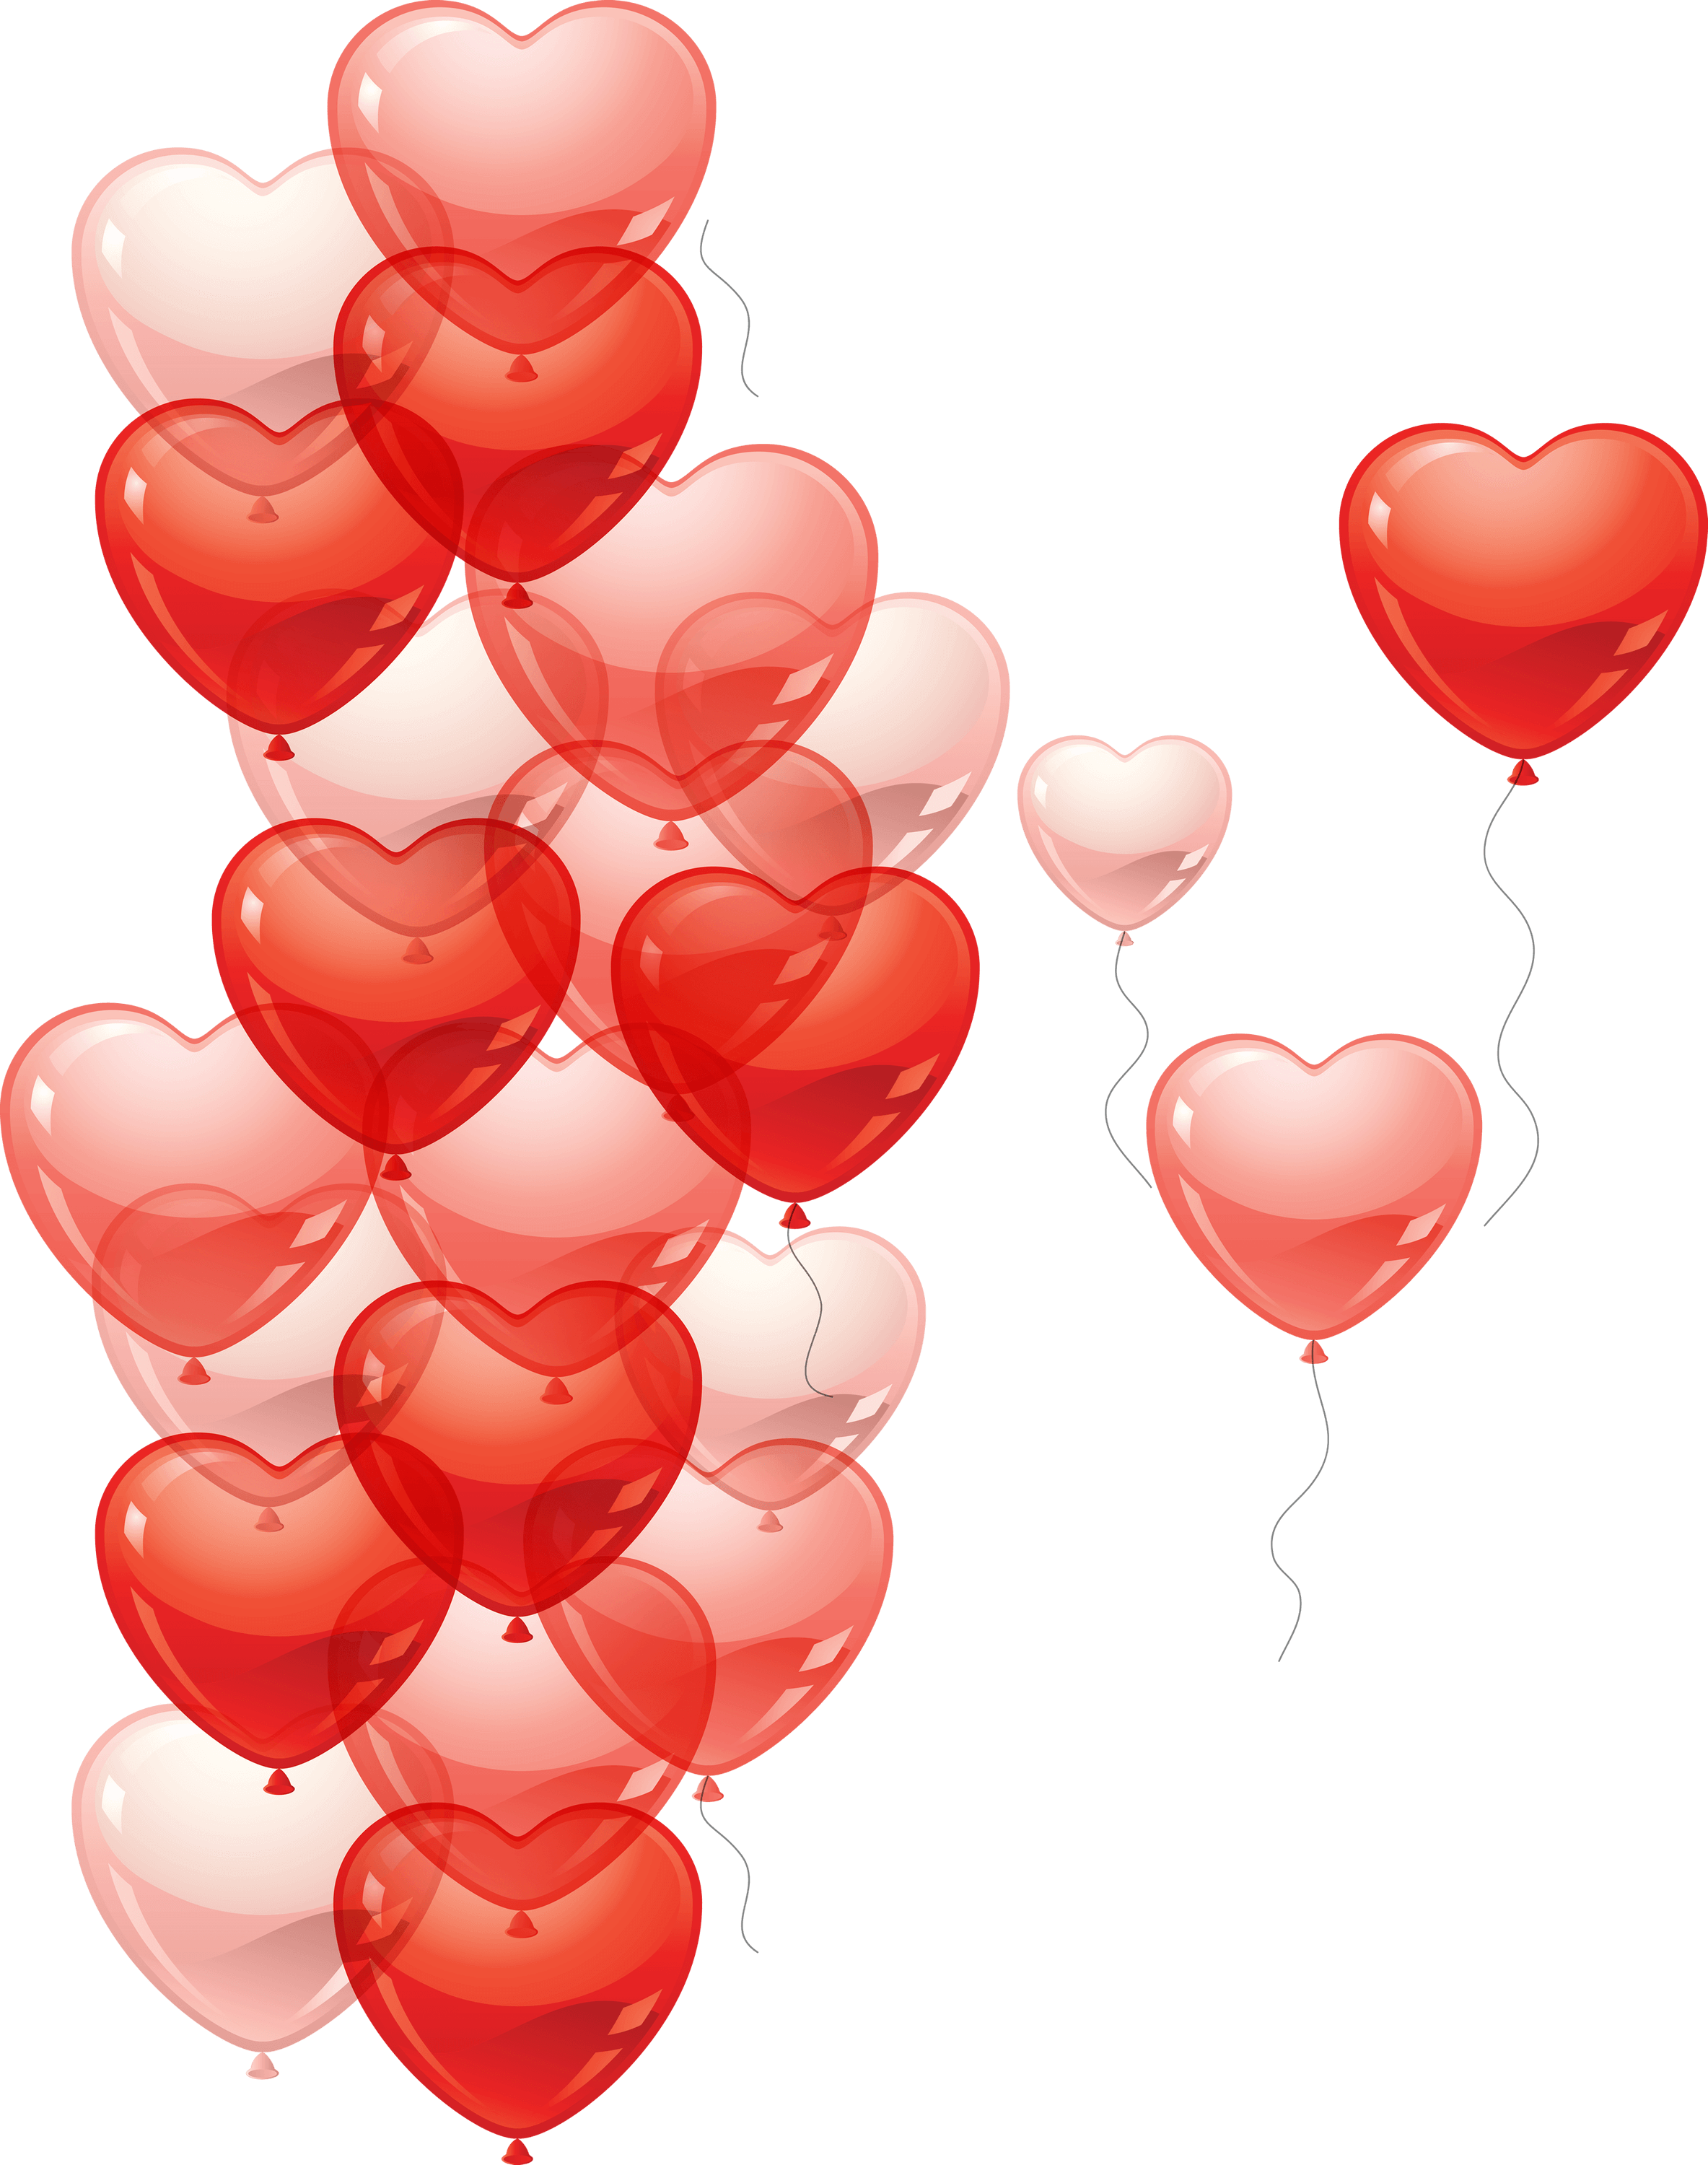 Hearts png transparent. Balloons